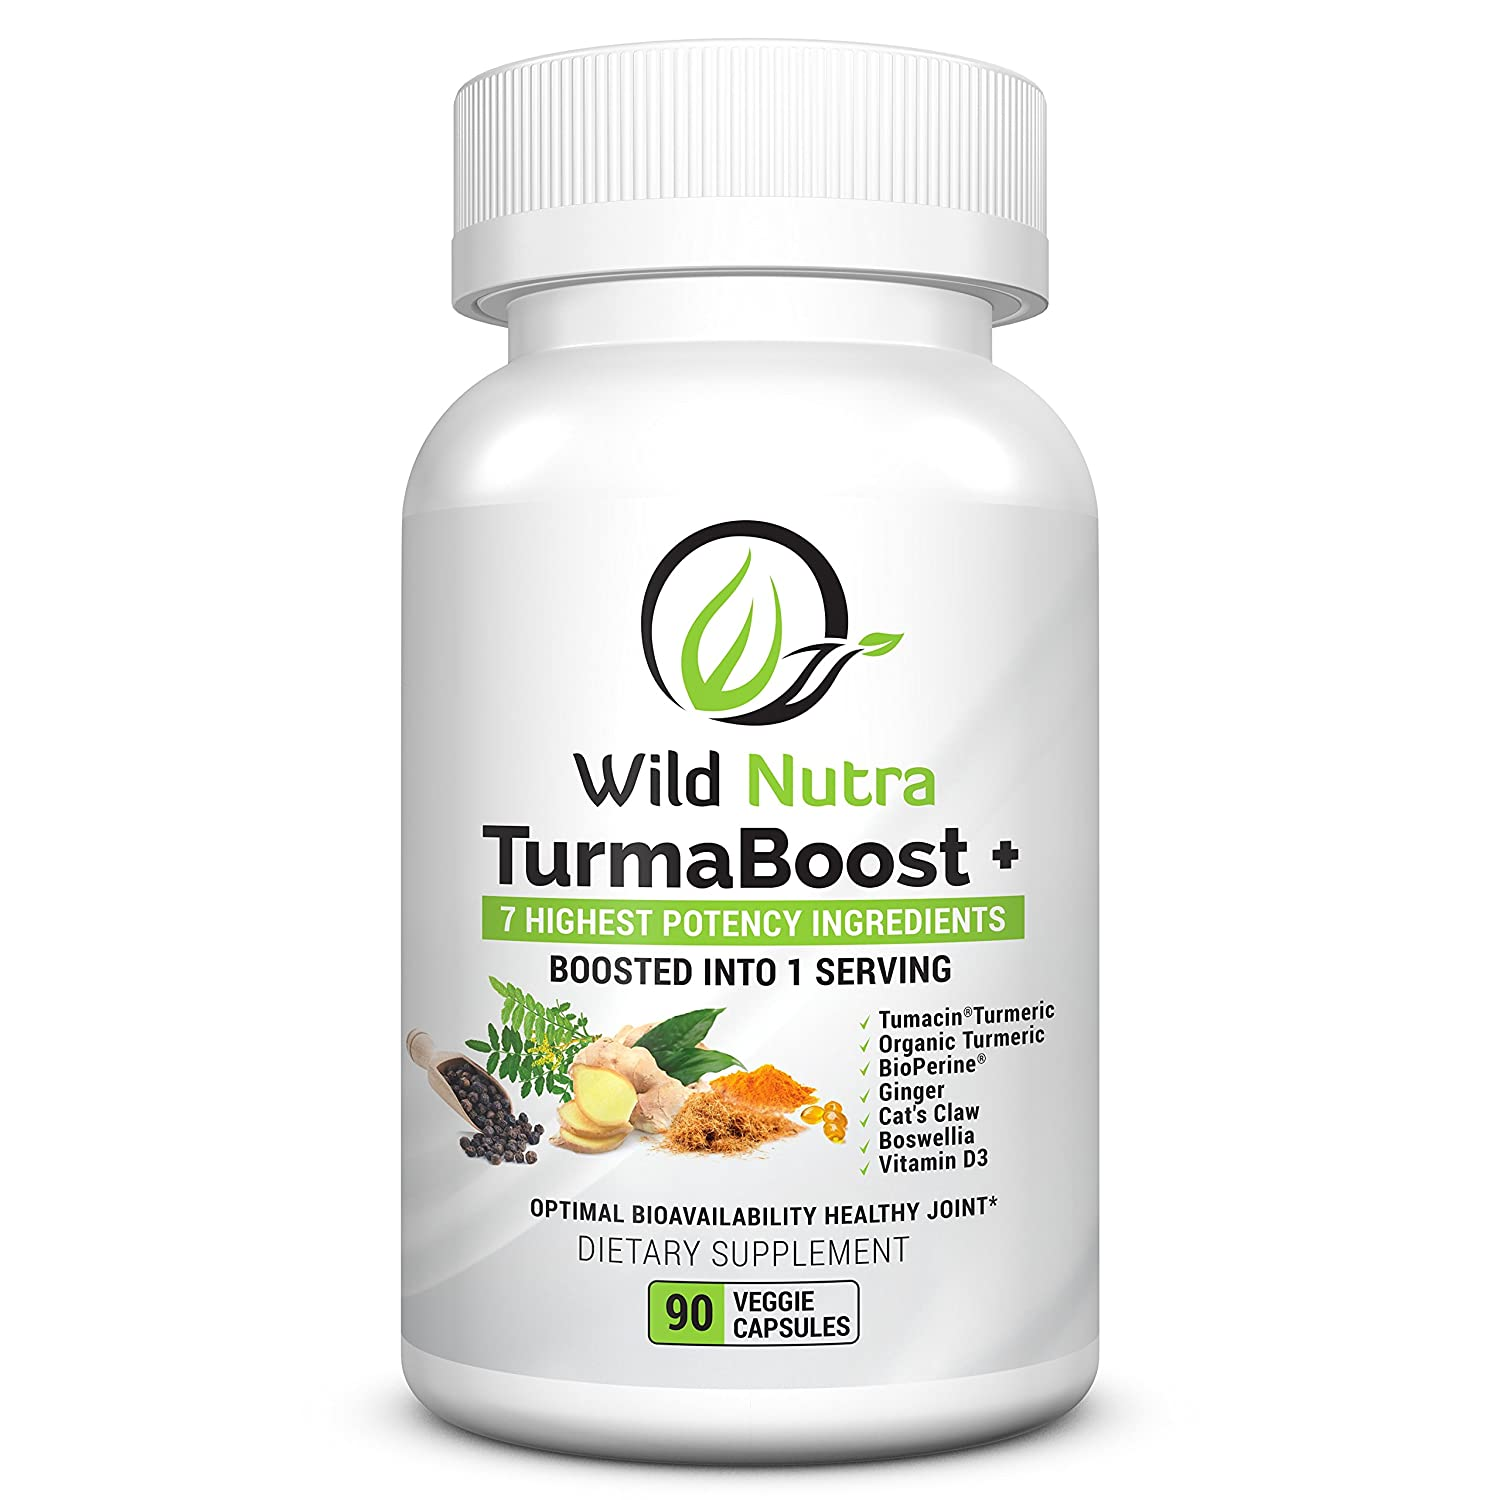 Wild Nutra TurmaBoost – Cats Claw Tumeric Curcumin with extra boosters Turmacin Organic Turmeric, Bioperine Black Pepper, Ginger, Boswellia Vitamin D. Soothe, Joint Support and Vitamins for Knees